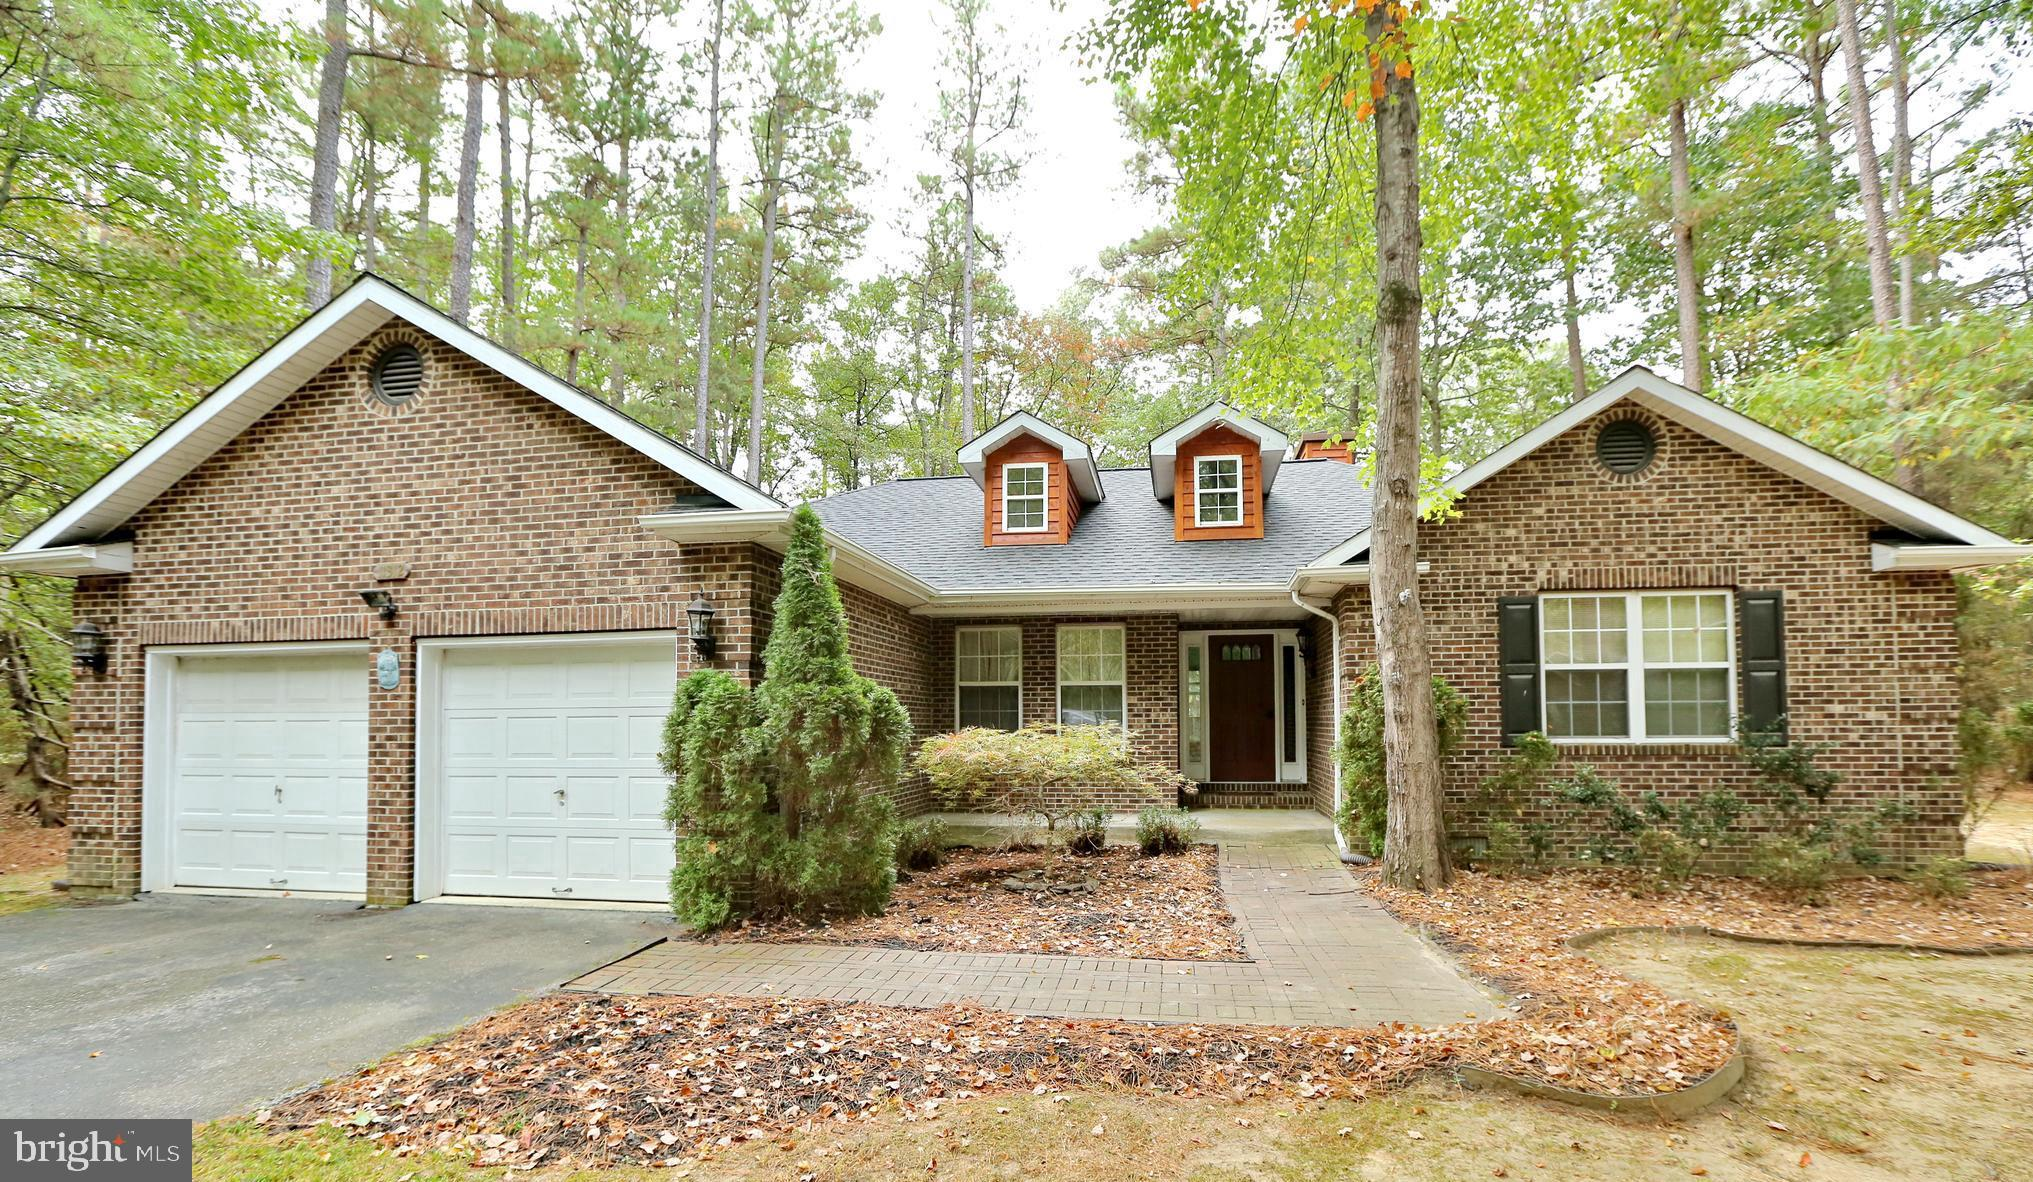 11312 WOLLASTON CIRCLE, SWAN POINT, MD 20645